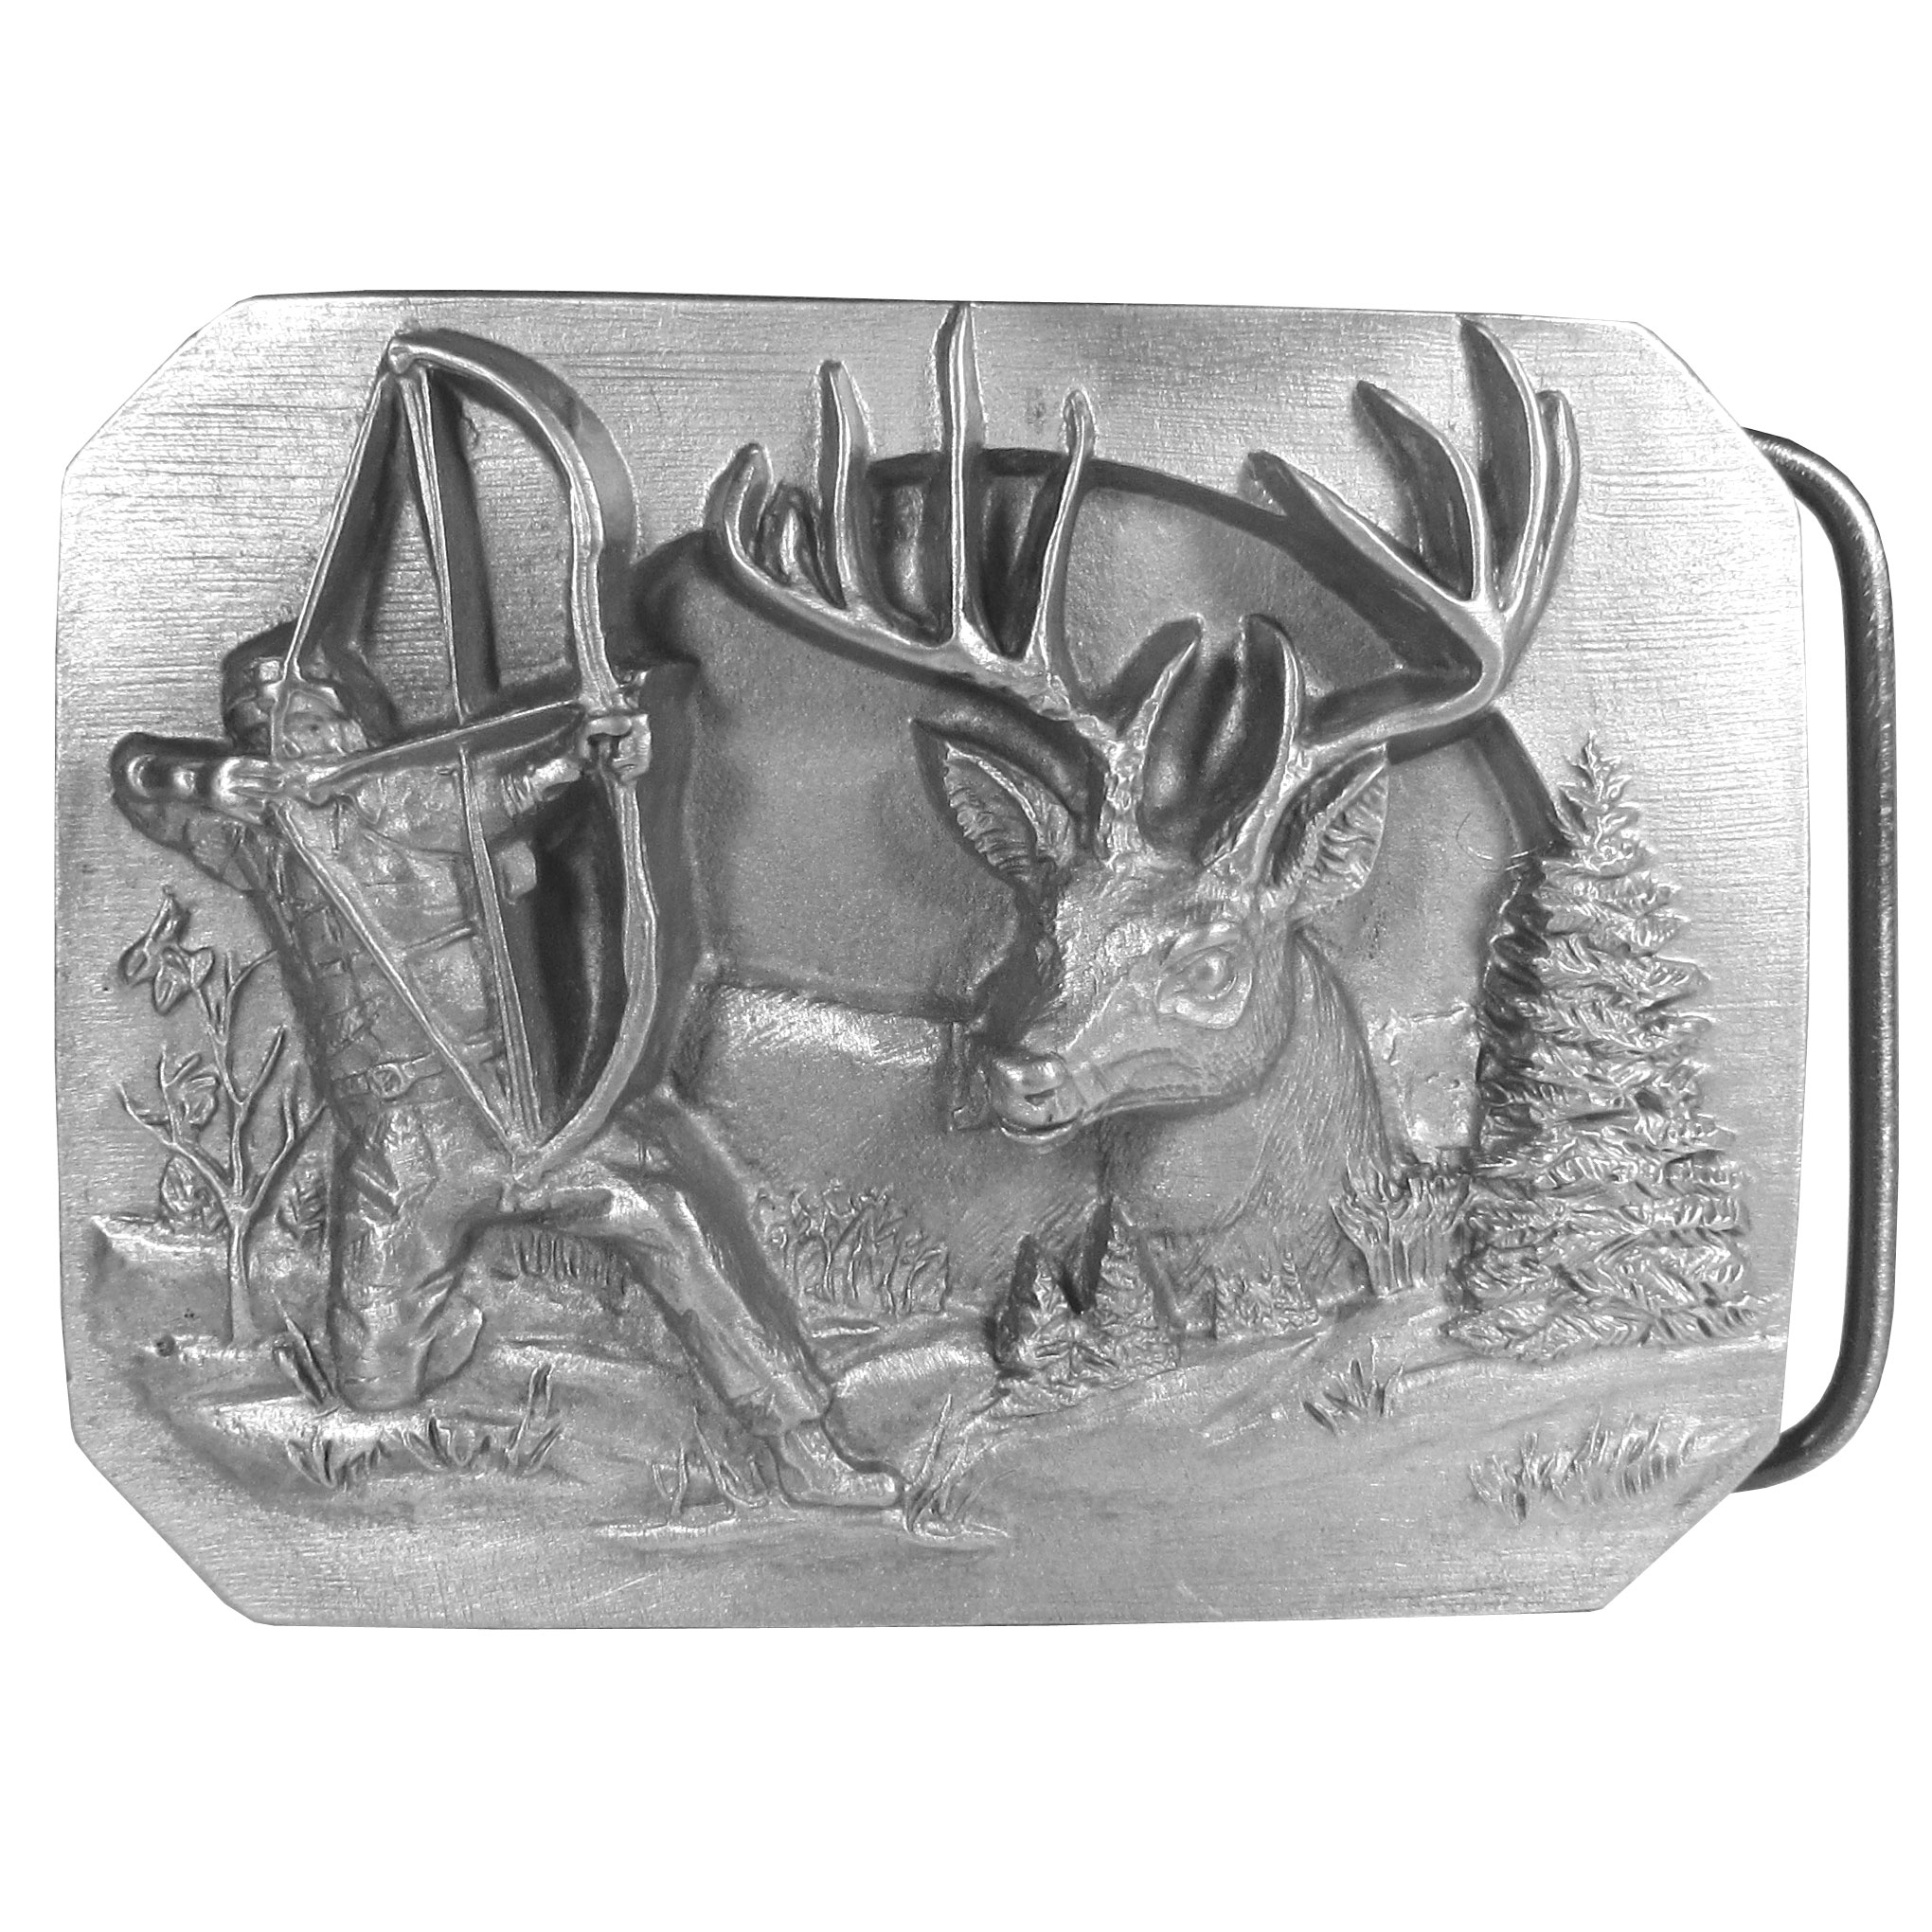 "Bowhunter Antiqued Belt Buckle - ""This belt buckle celebrates the bowhunter!  There is a man with a bow and arrow, an antlered buck, as well as trees and grass and a sun in the background.  On the back are the words, """"Bowhunters Reward.  A bowhunter is a breed like no other.  He patiently waits, stalks, passes up less than perfect shots waiting for his quarry.  Then on that crisp, cool autumn morning he draws his bow and releases into the reward of a lifetime.""""  """